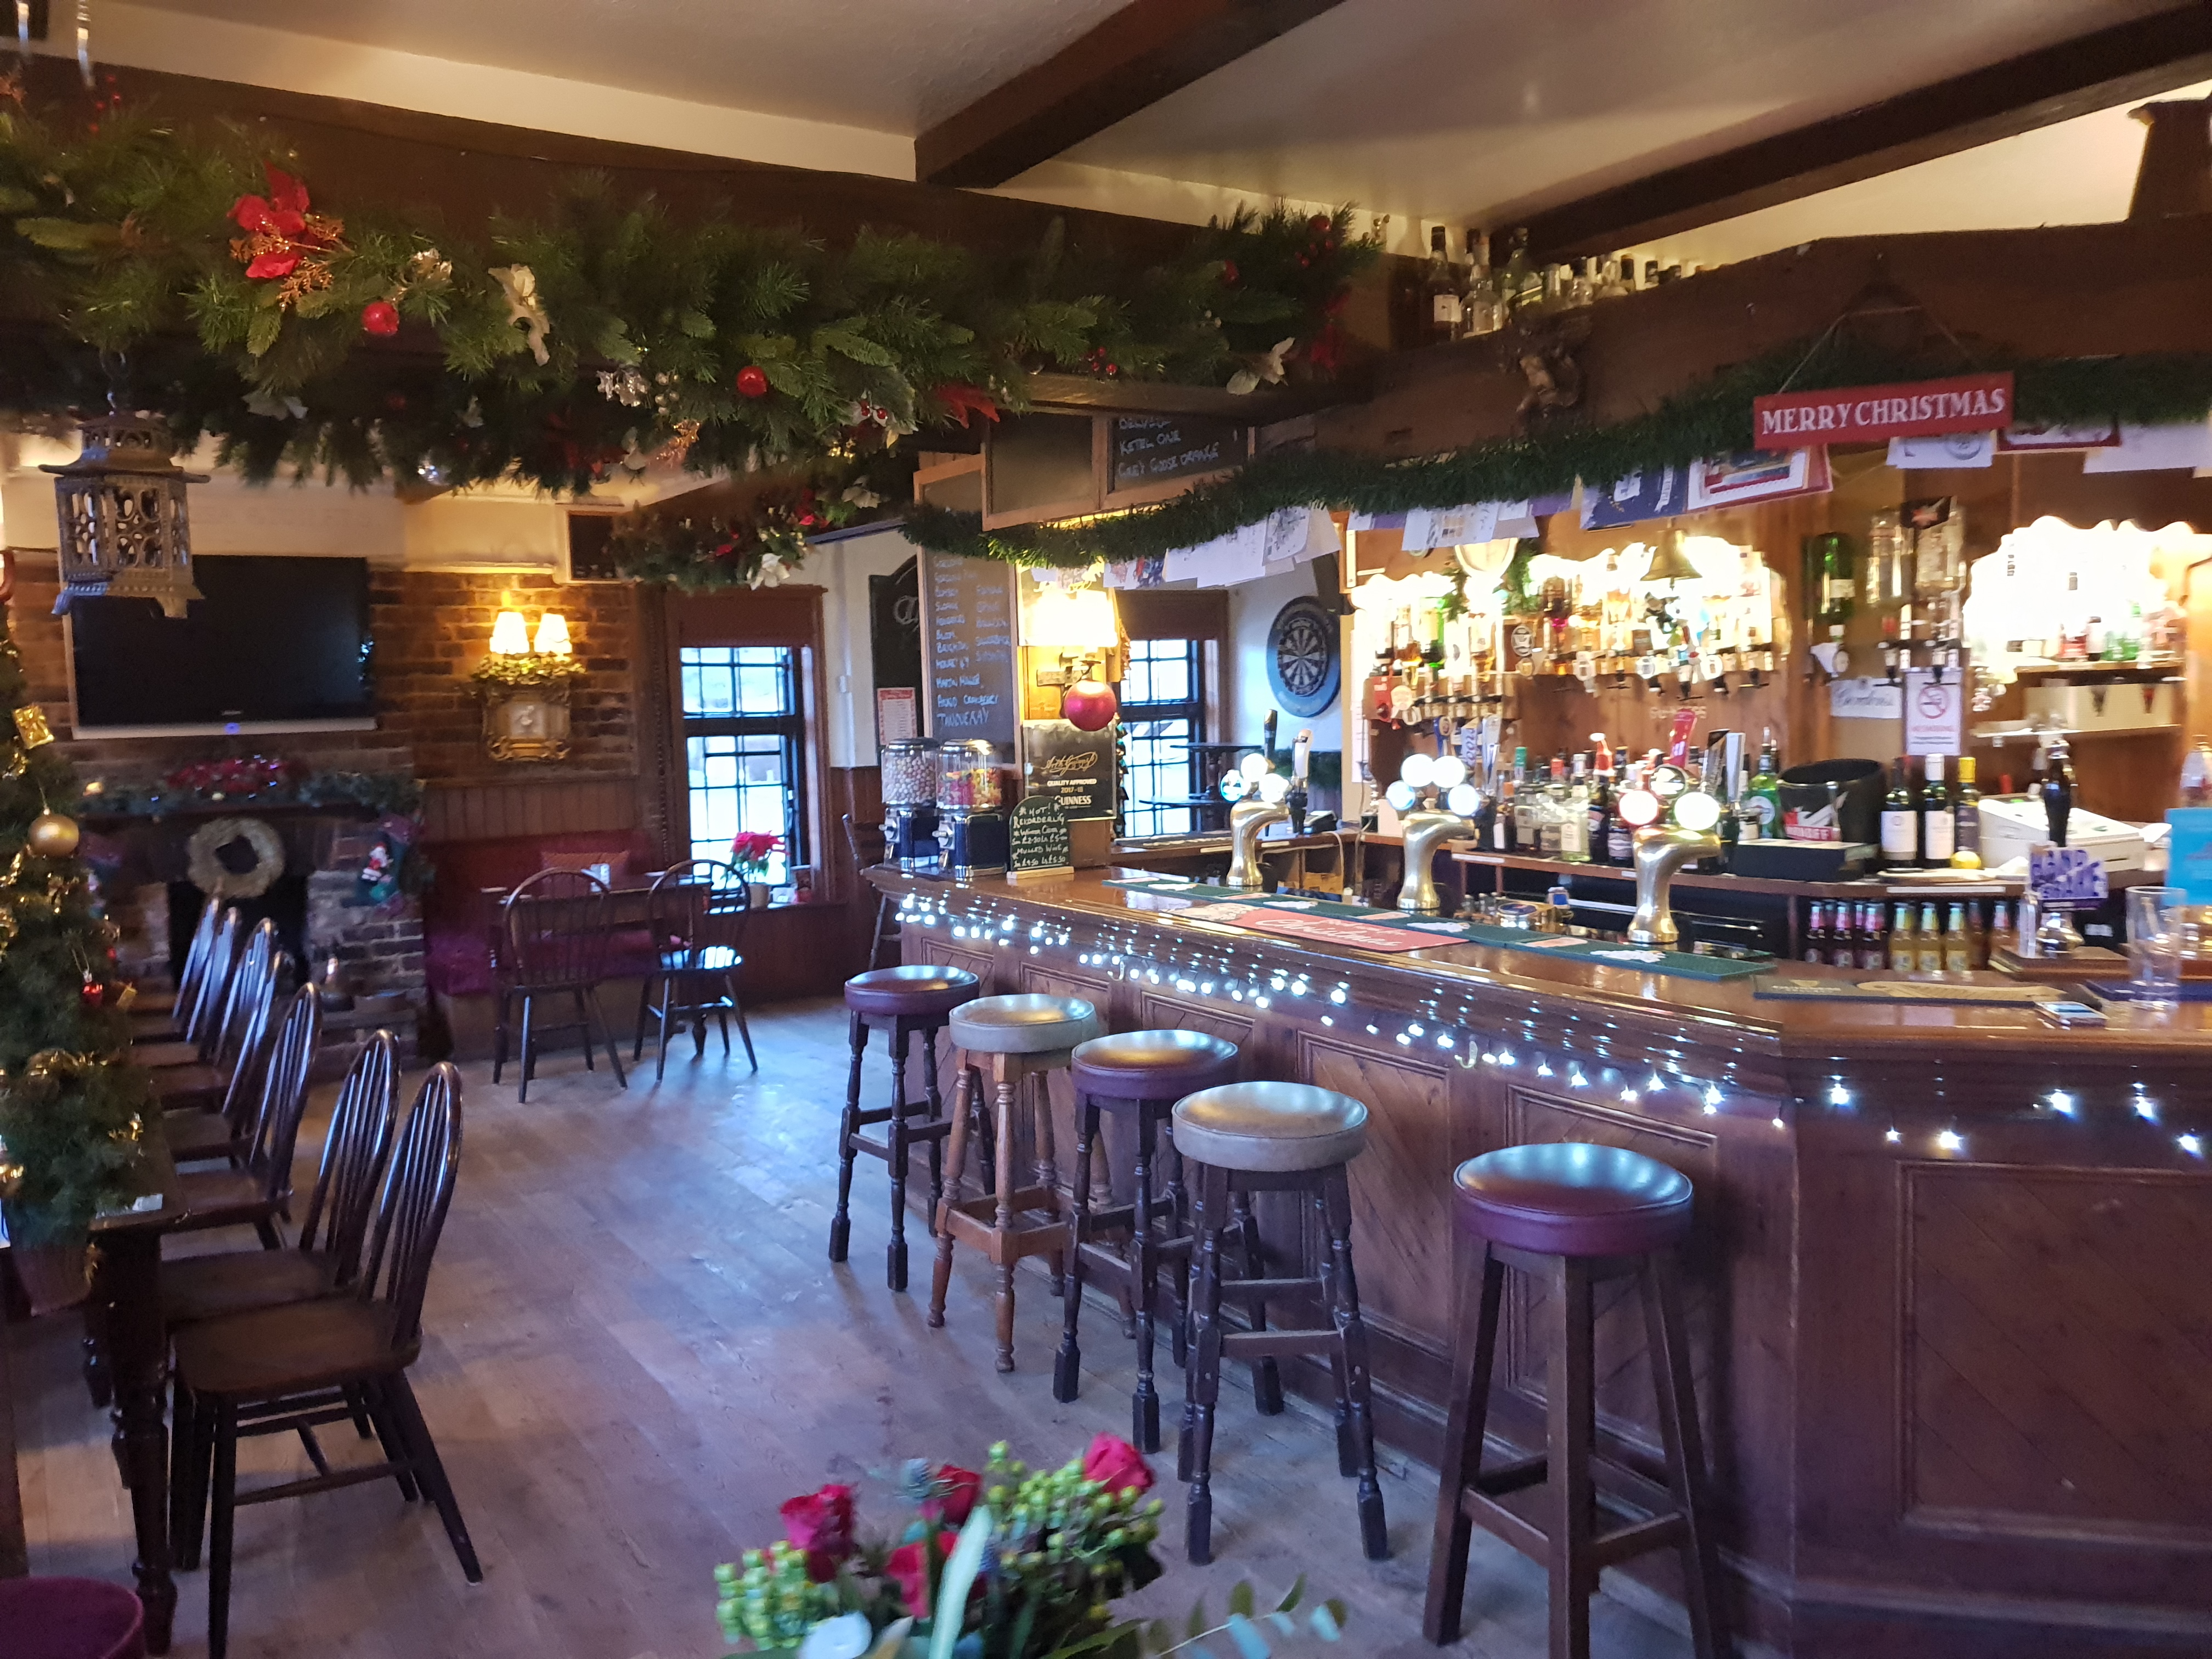 Inside the Holmbush Inn Faygate